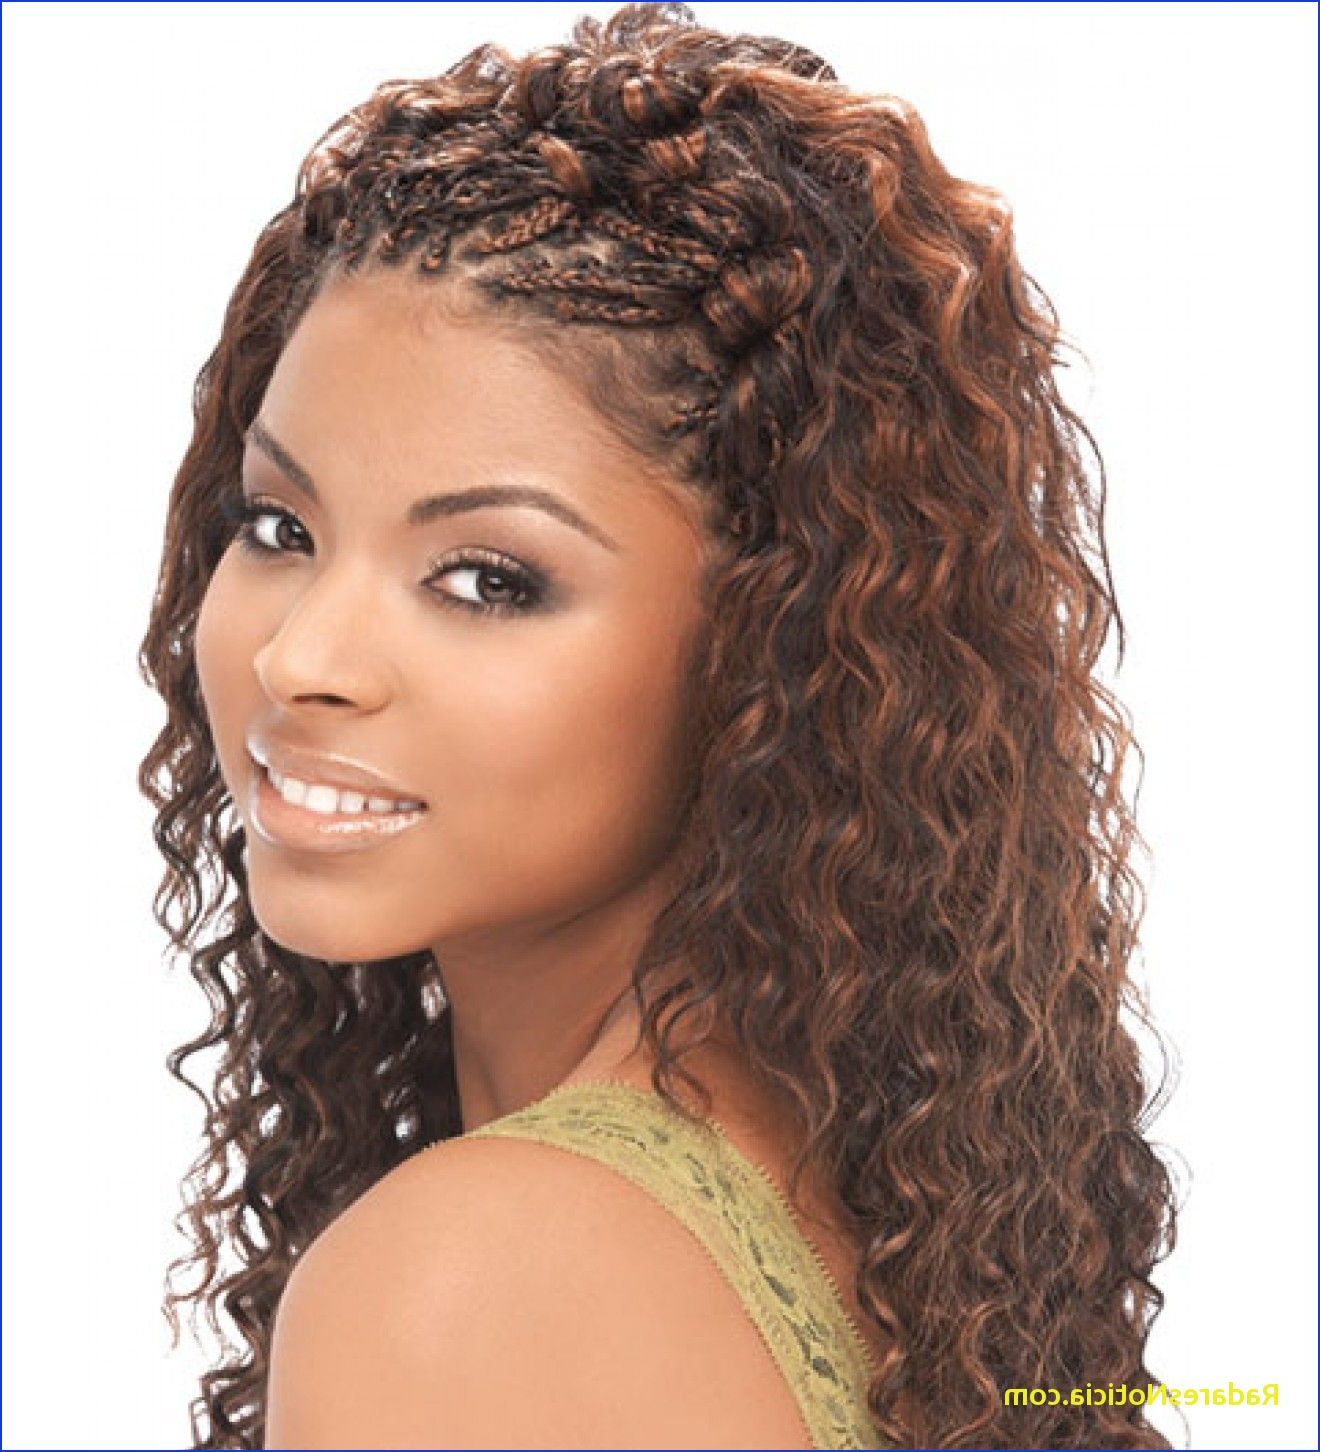 Braids And Curls For Black Hair Micro Braids Hairstyles With Inside Current Micro Braided Hairstyles (View 20 of 20)